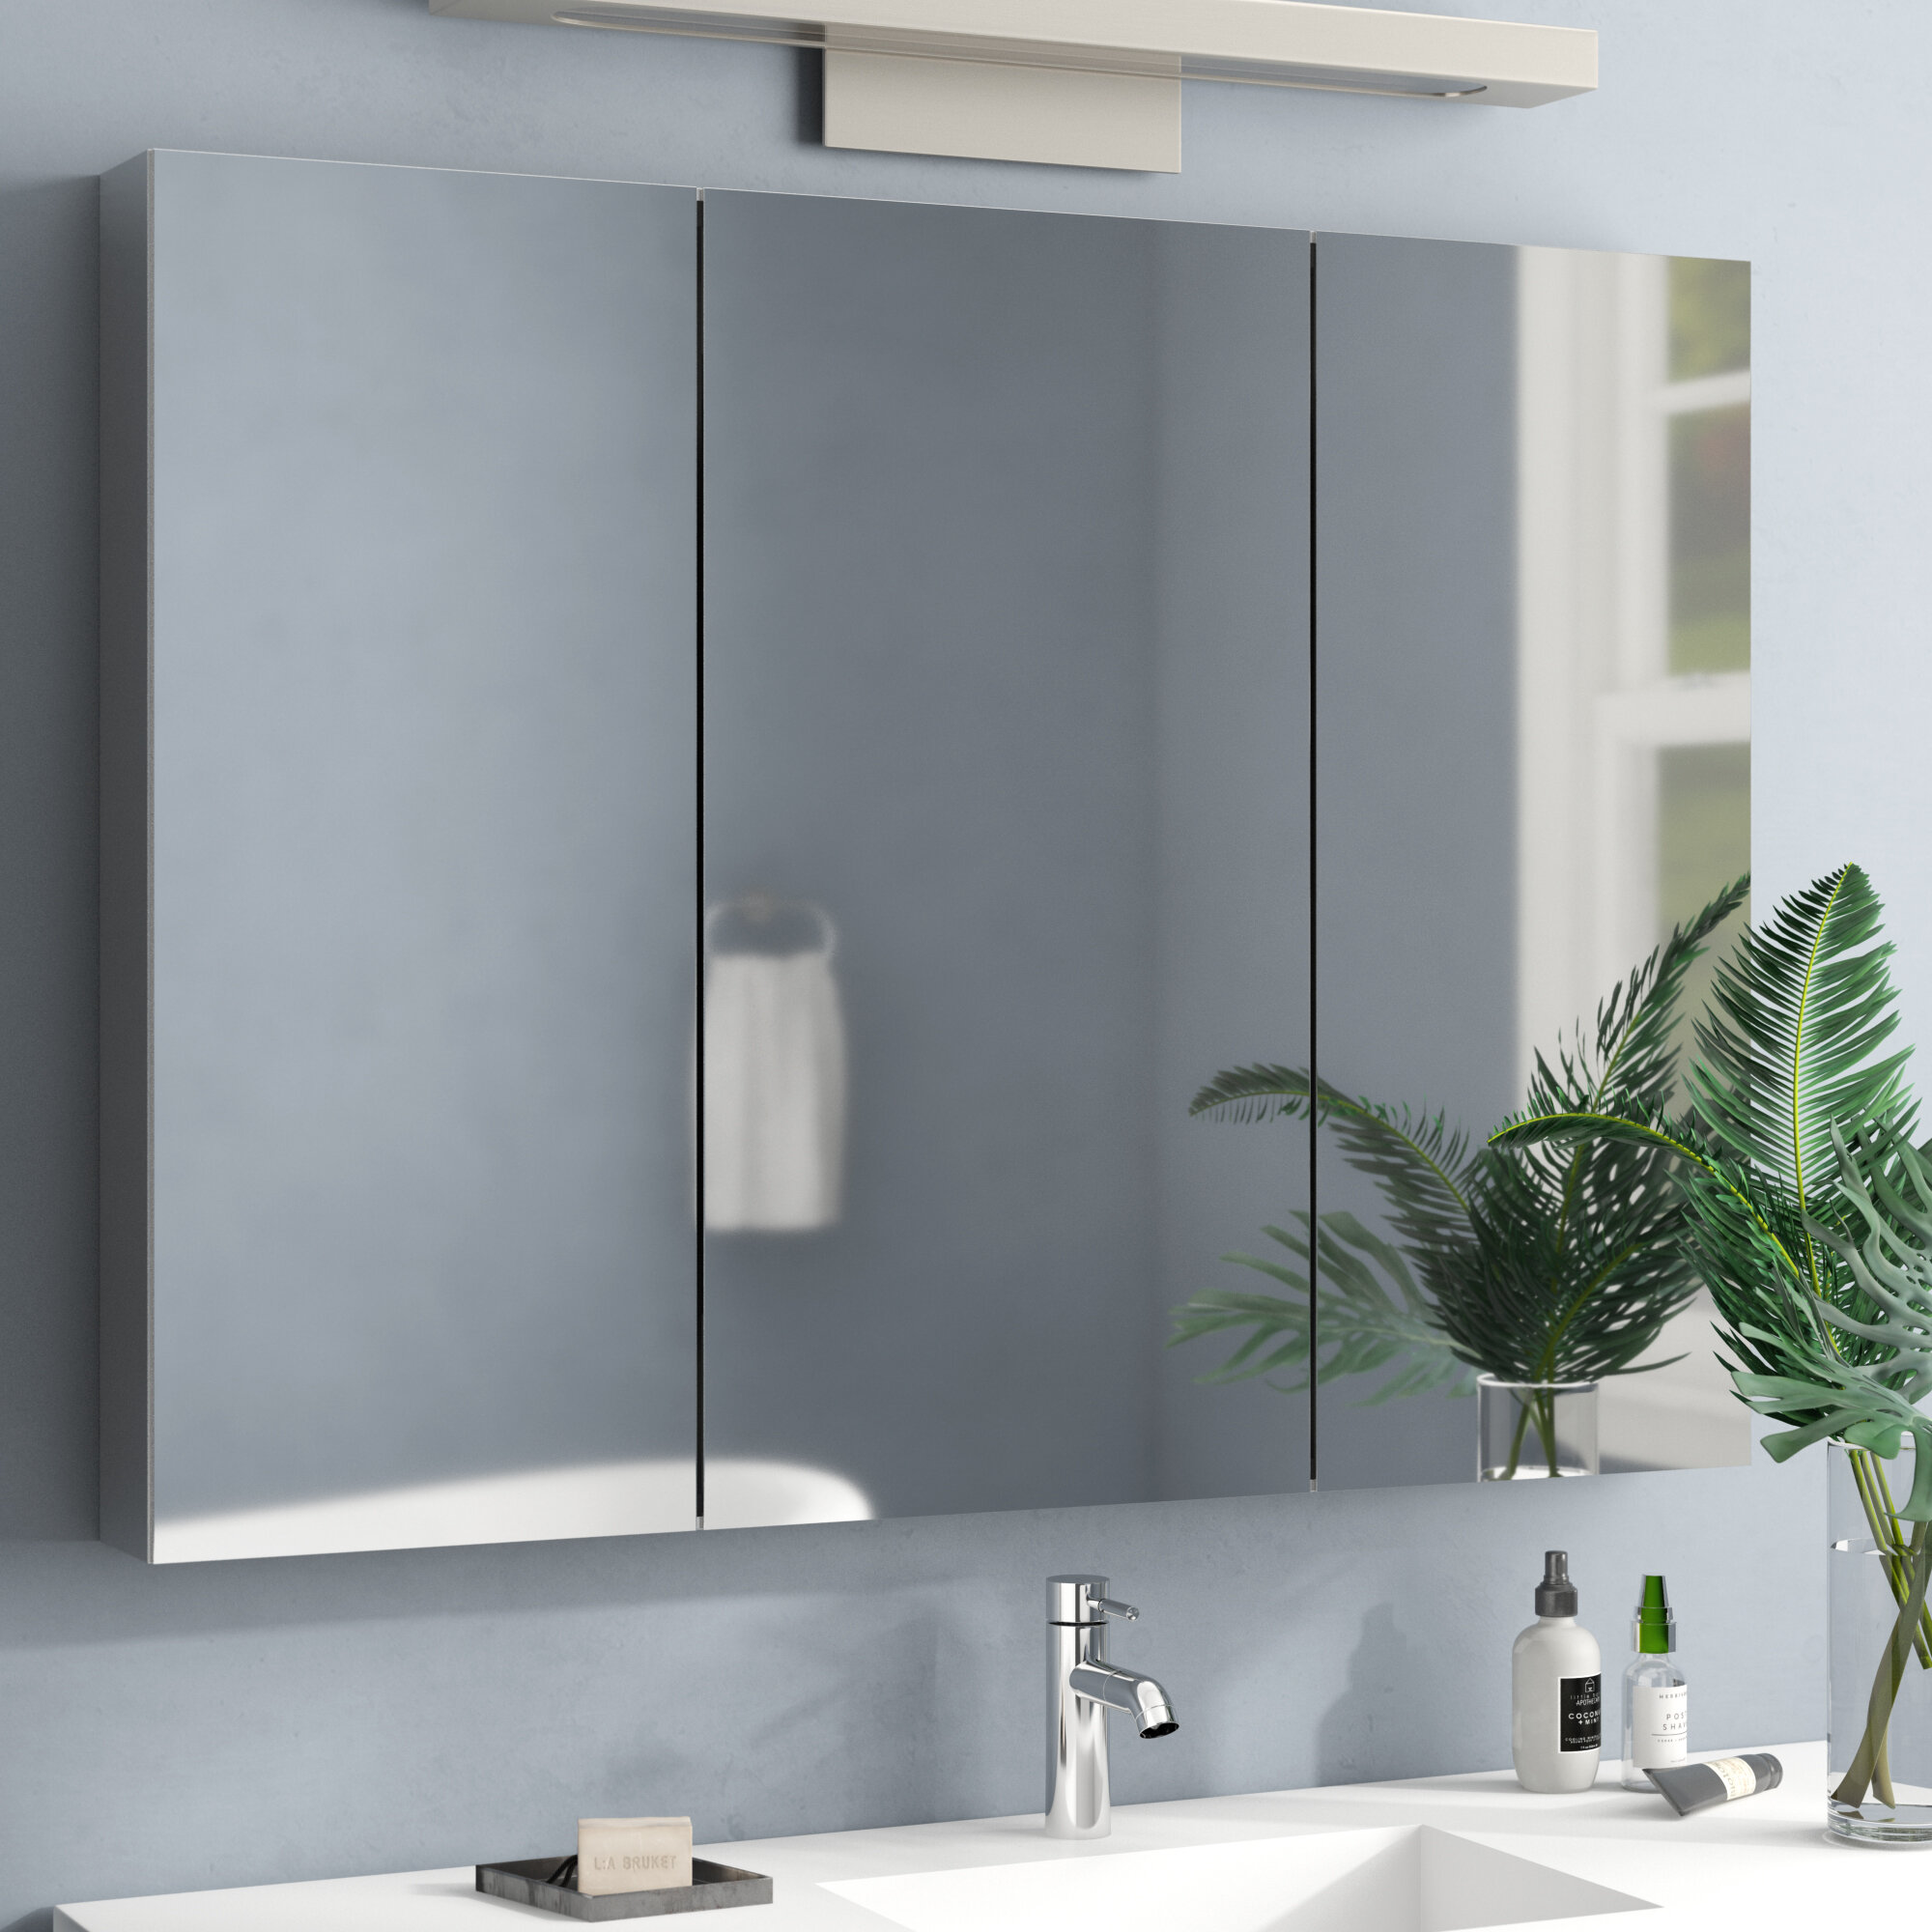 Twitty Recessed Frameless 12 Doors Medicine Cabinet with 12 Adjustable Shelves